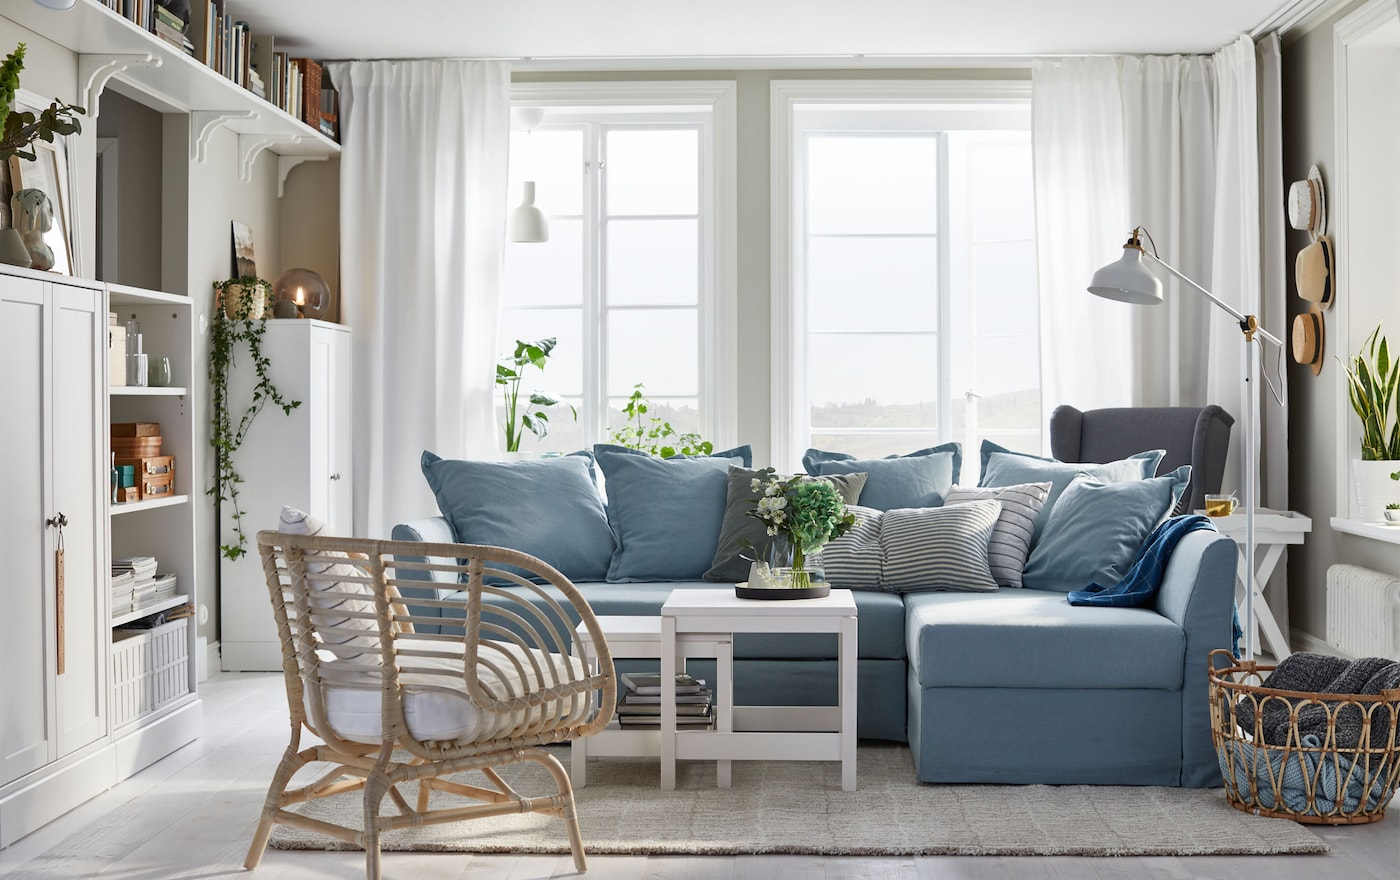 Bright, Crisp And So Inviting U2013 Hereu0027s A Living Room To Create Many  Memories In